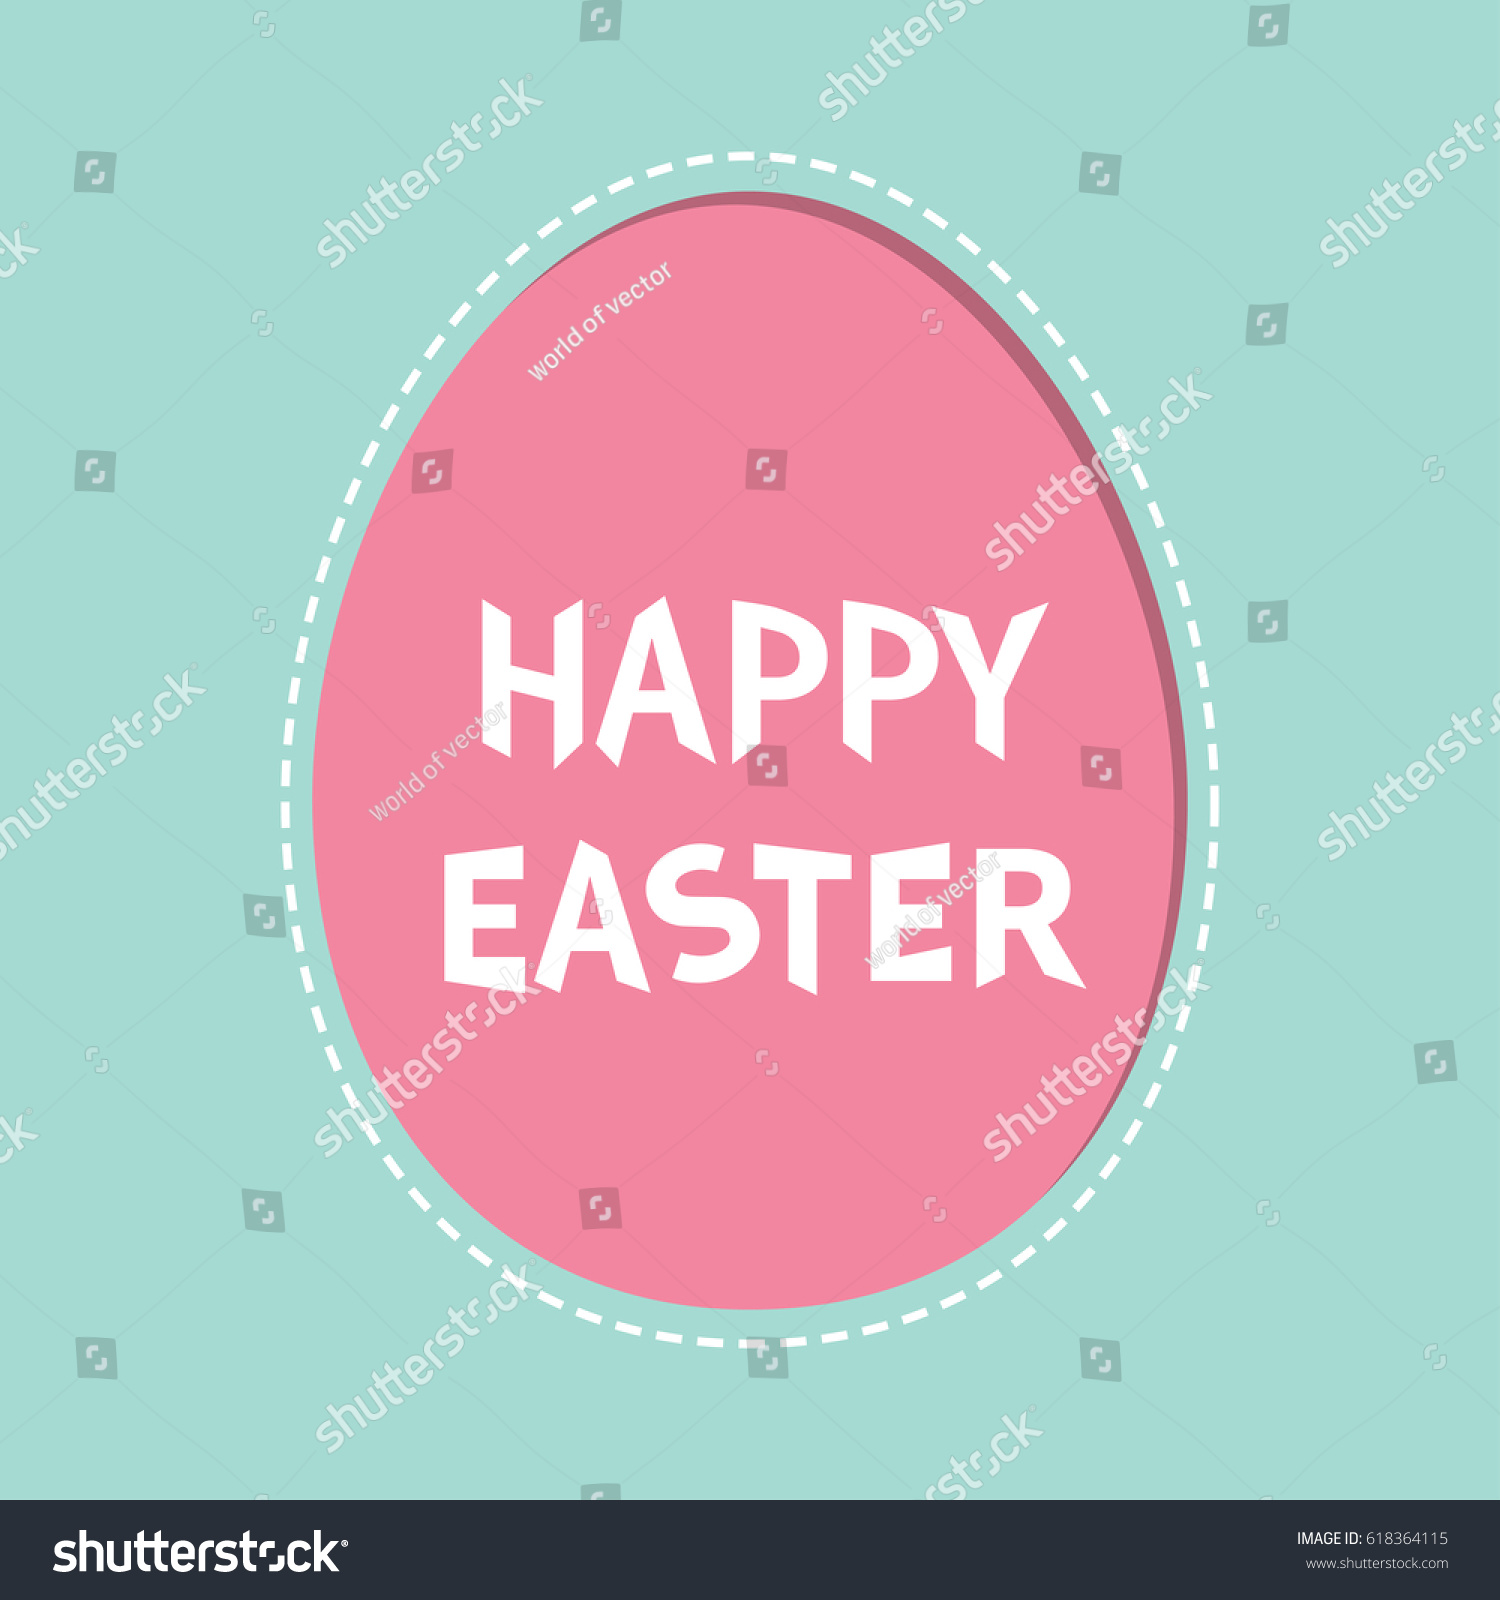 Happy Easter Text Painted Egg Frame Window Template Dash Line Contour Greeting Card